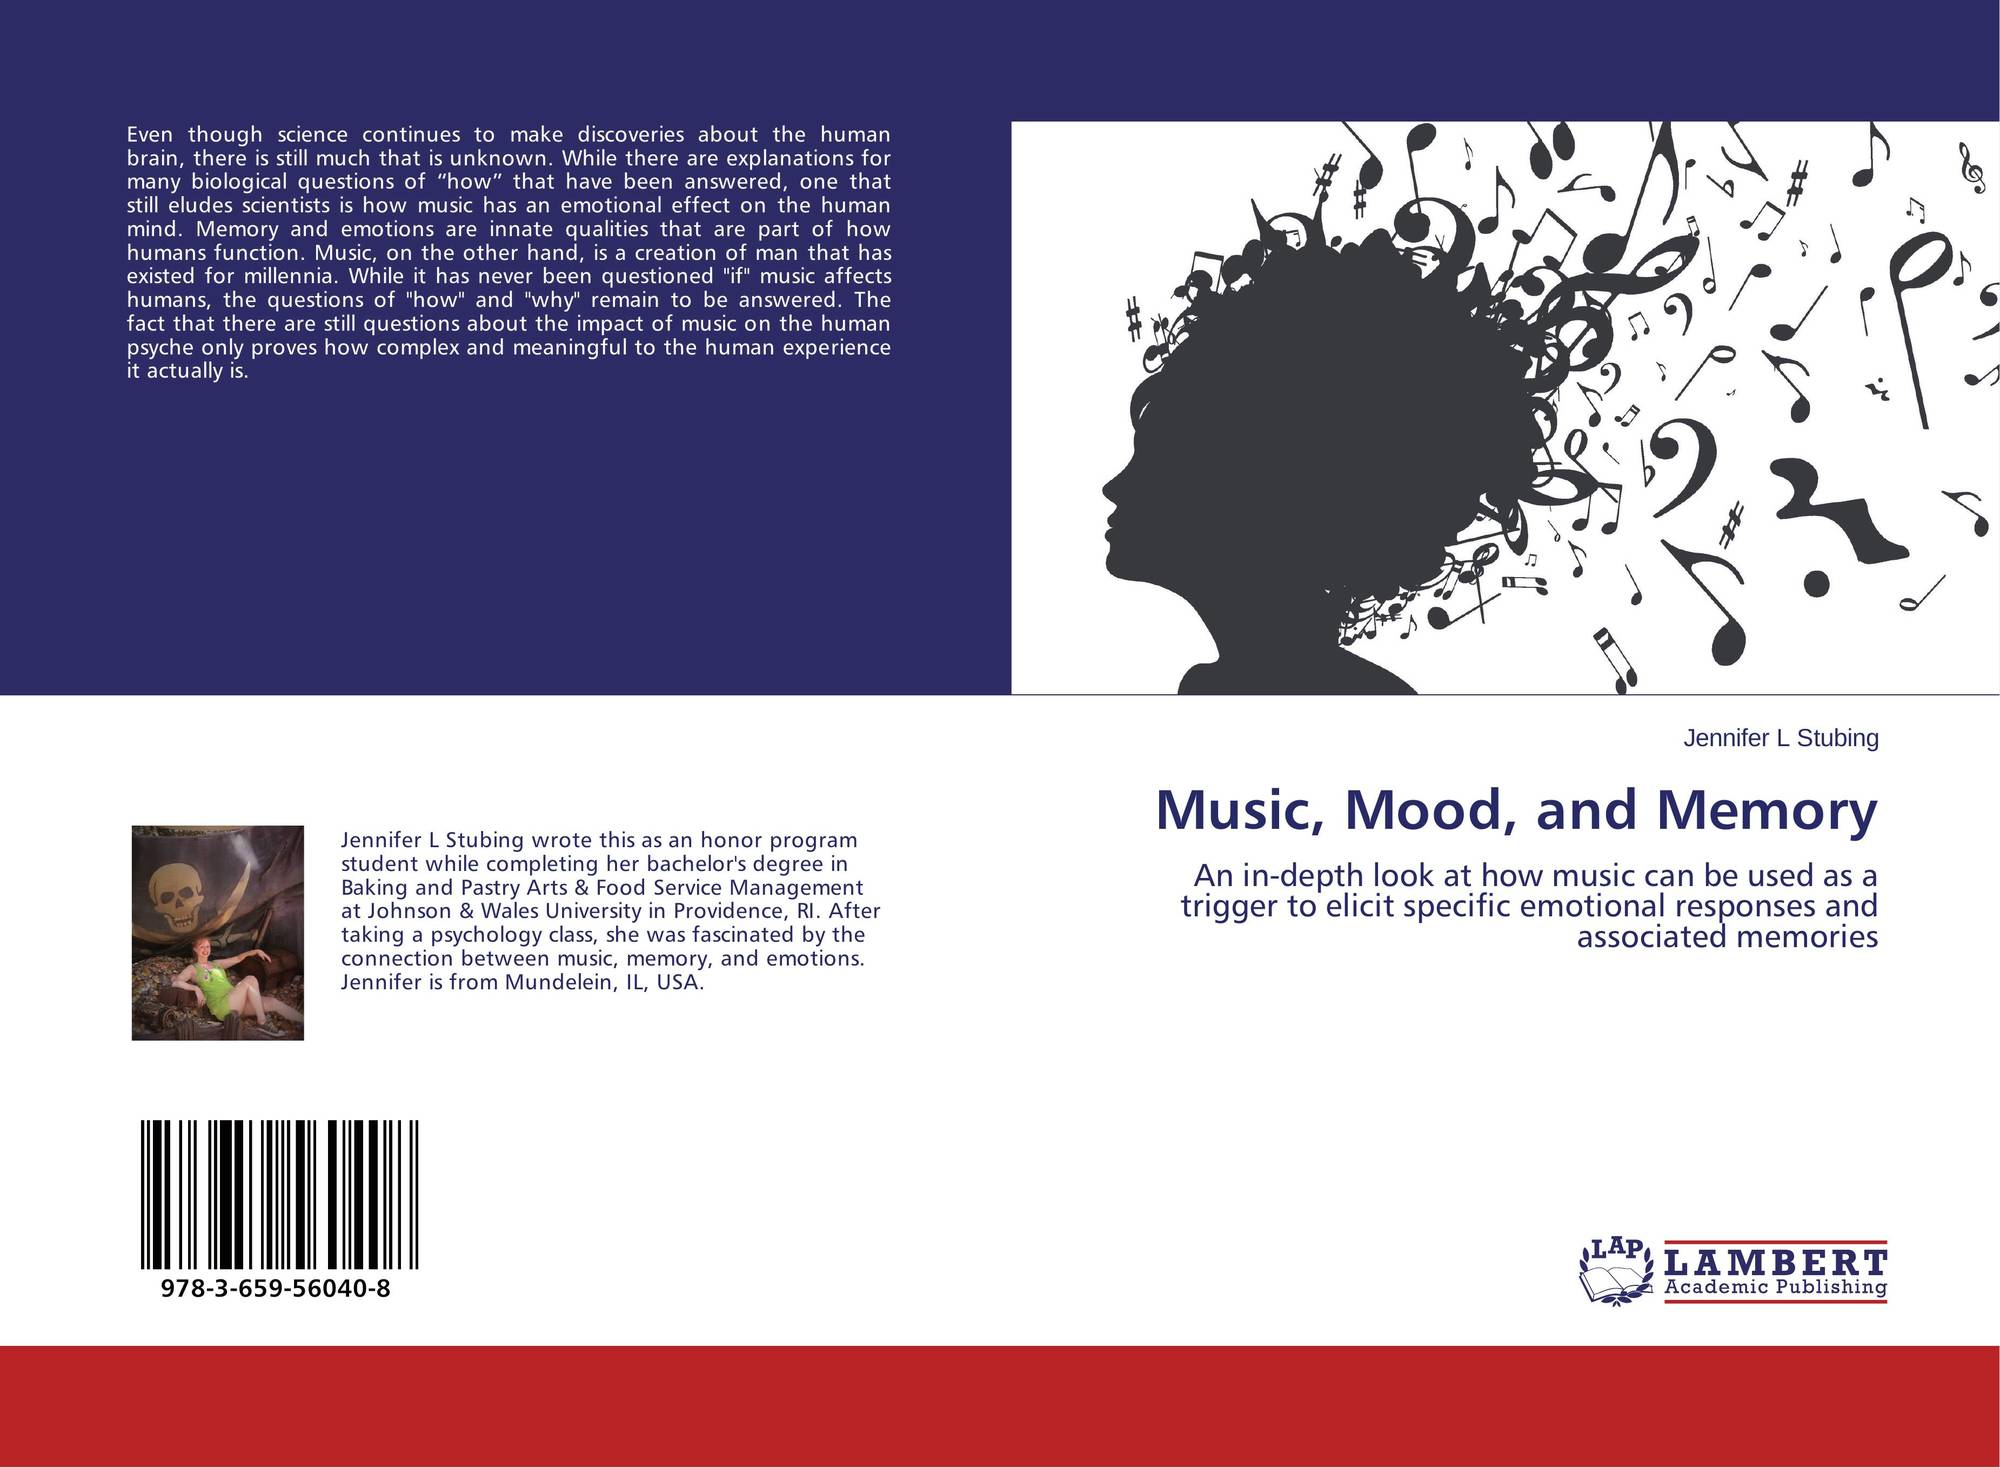 effect of music on memory retrieval Journal of memory and language 67 (2012) 17–29 peated retrieval effects, then the effects should be elimi-nated when elaboration is prohibited with these.